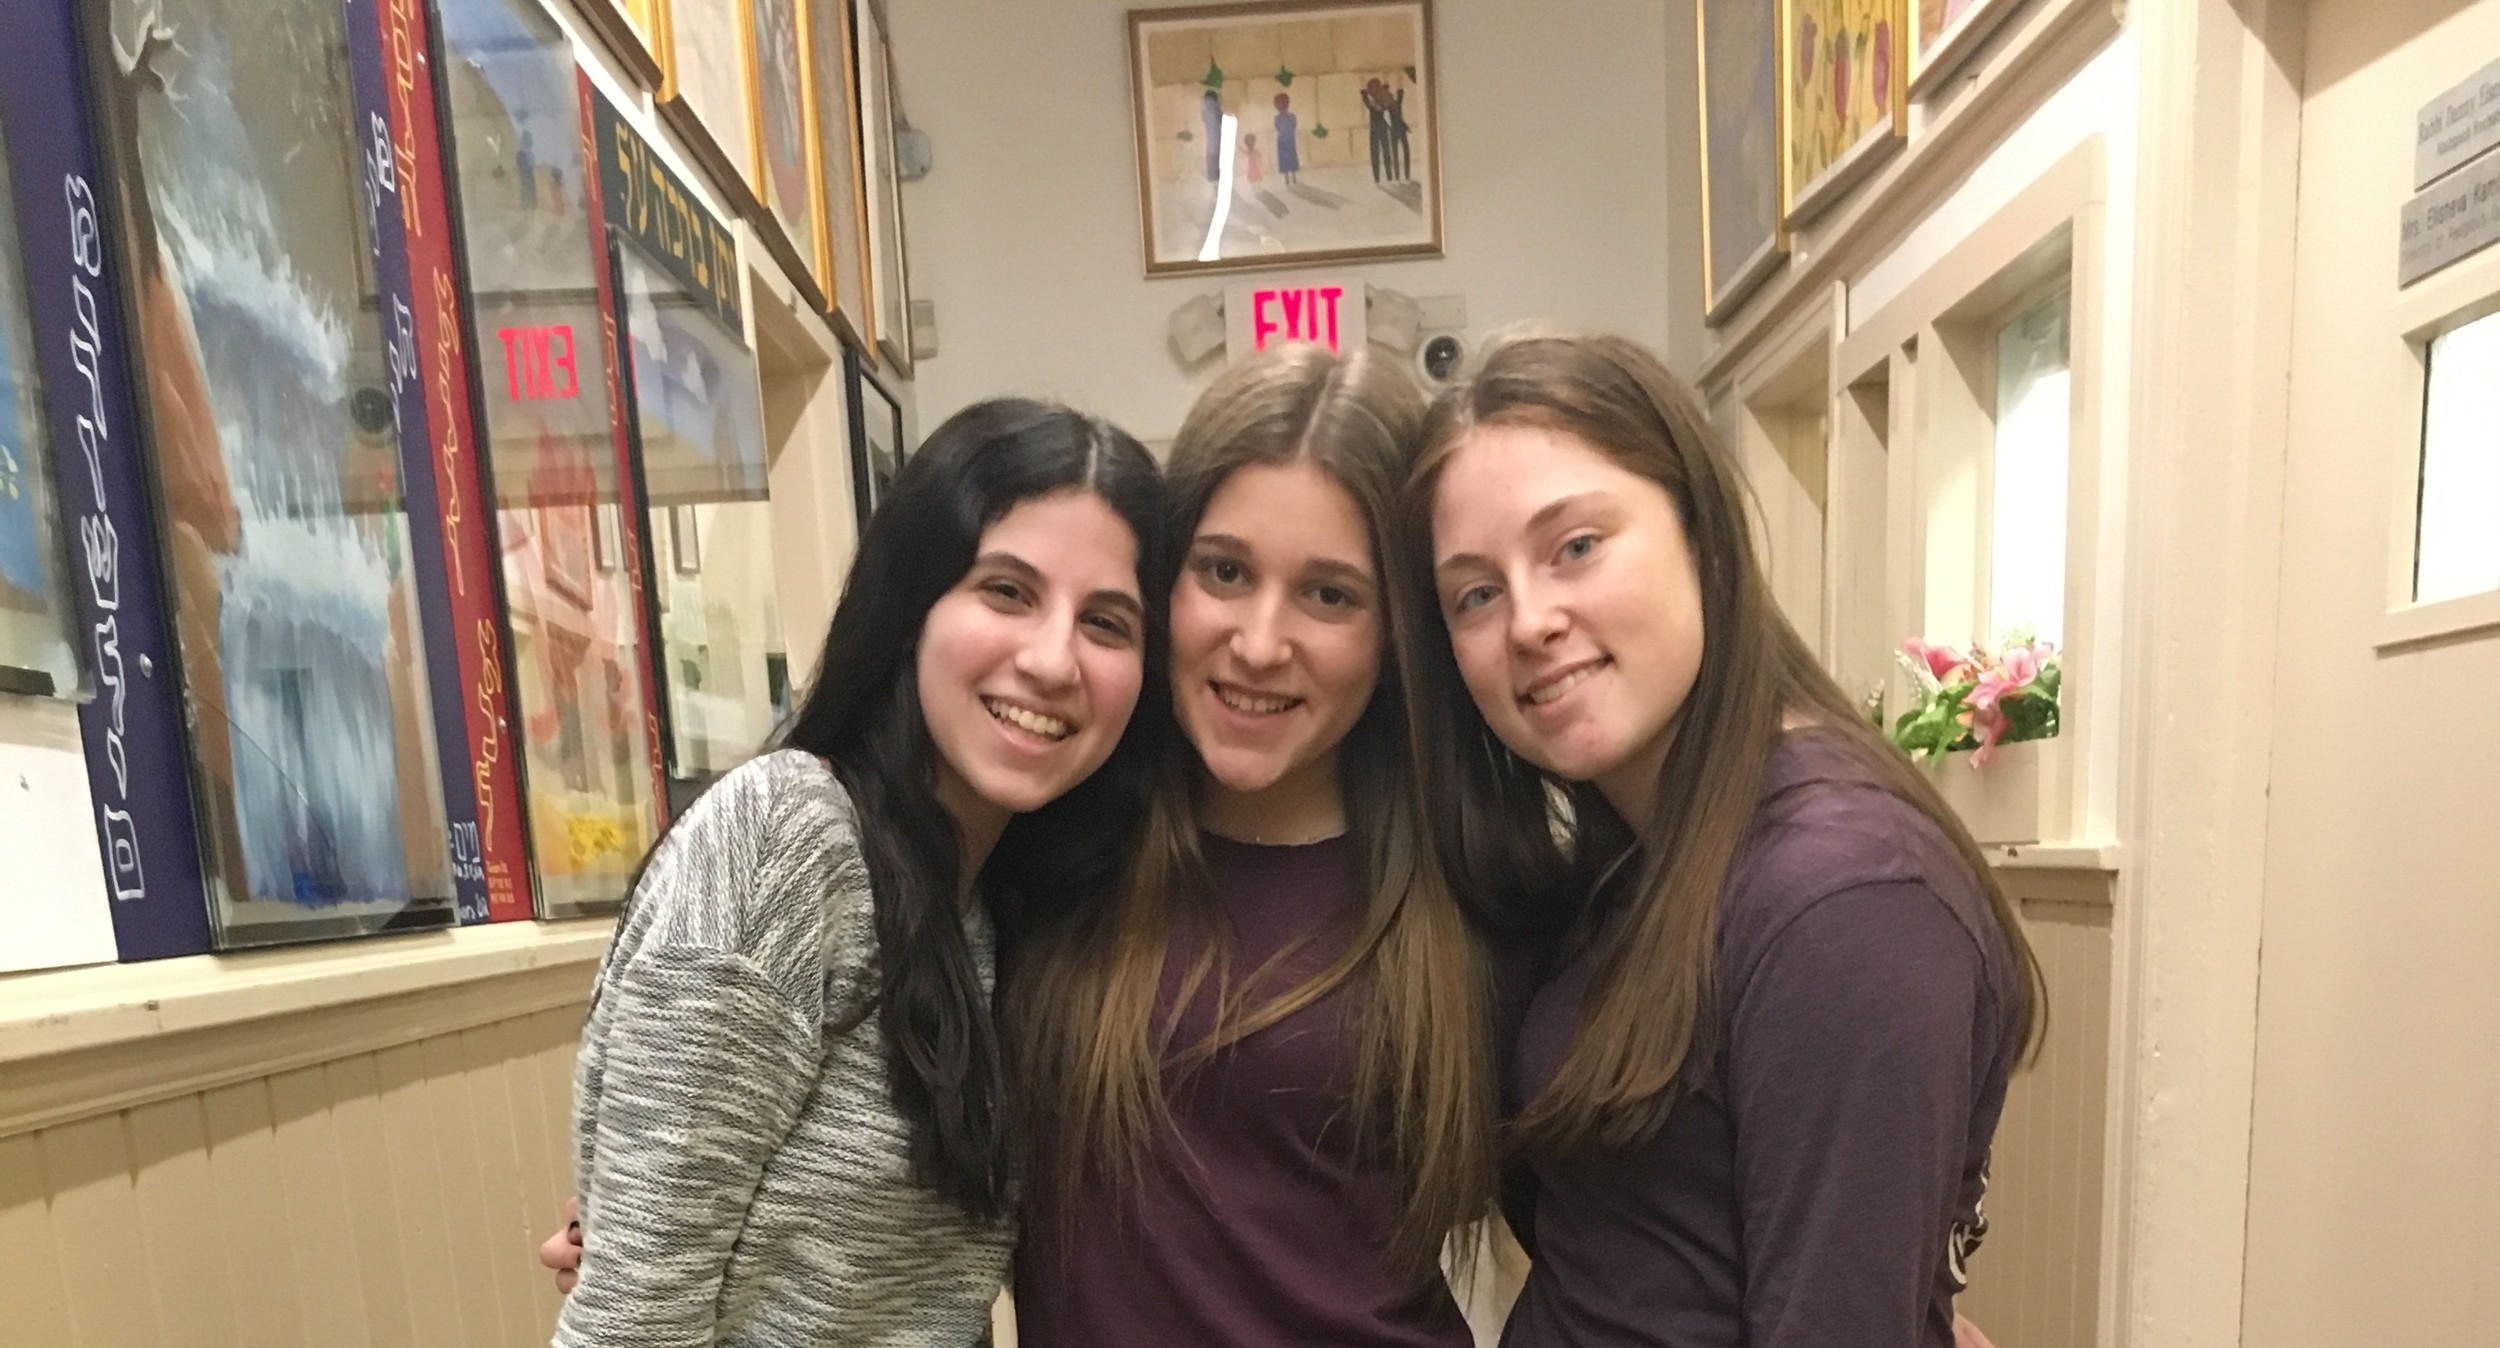 SKA's student newspaper, The Looking Glass, is currently led by co-editor-in-chief Shoshana Reichman, left, layout editor Danielle Greenfield, layout editor, and co- editor-in-chief Elisheva Greenberg.